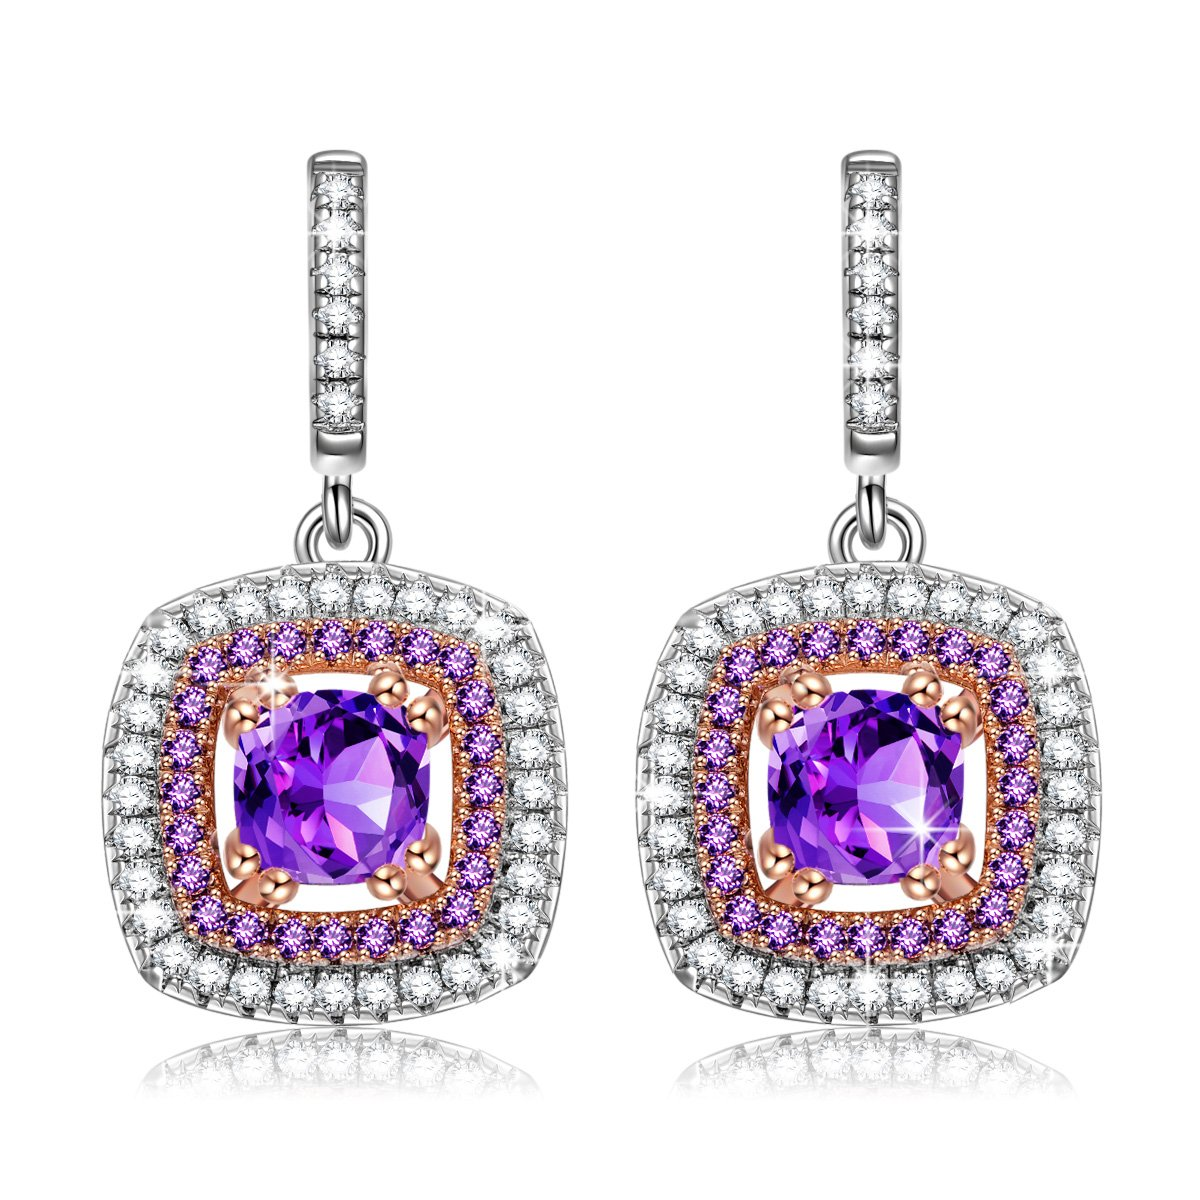 NINASUN Purple CZ Earrings Gifts for Her Impression s925 Sterling Silver Dangle Earrings Fine Jewelry for Women Gifts from for Mom Birthday Gifts for Grandma Anniversary Gifts for Wife Girlfriend